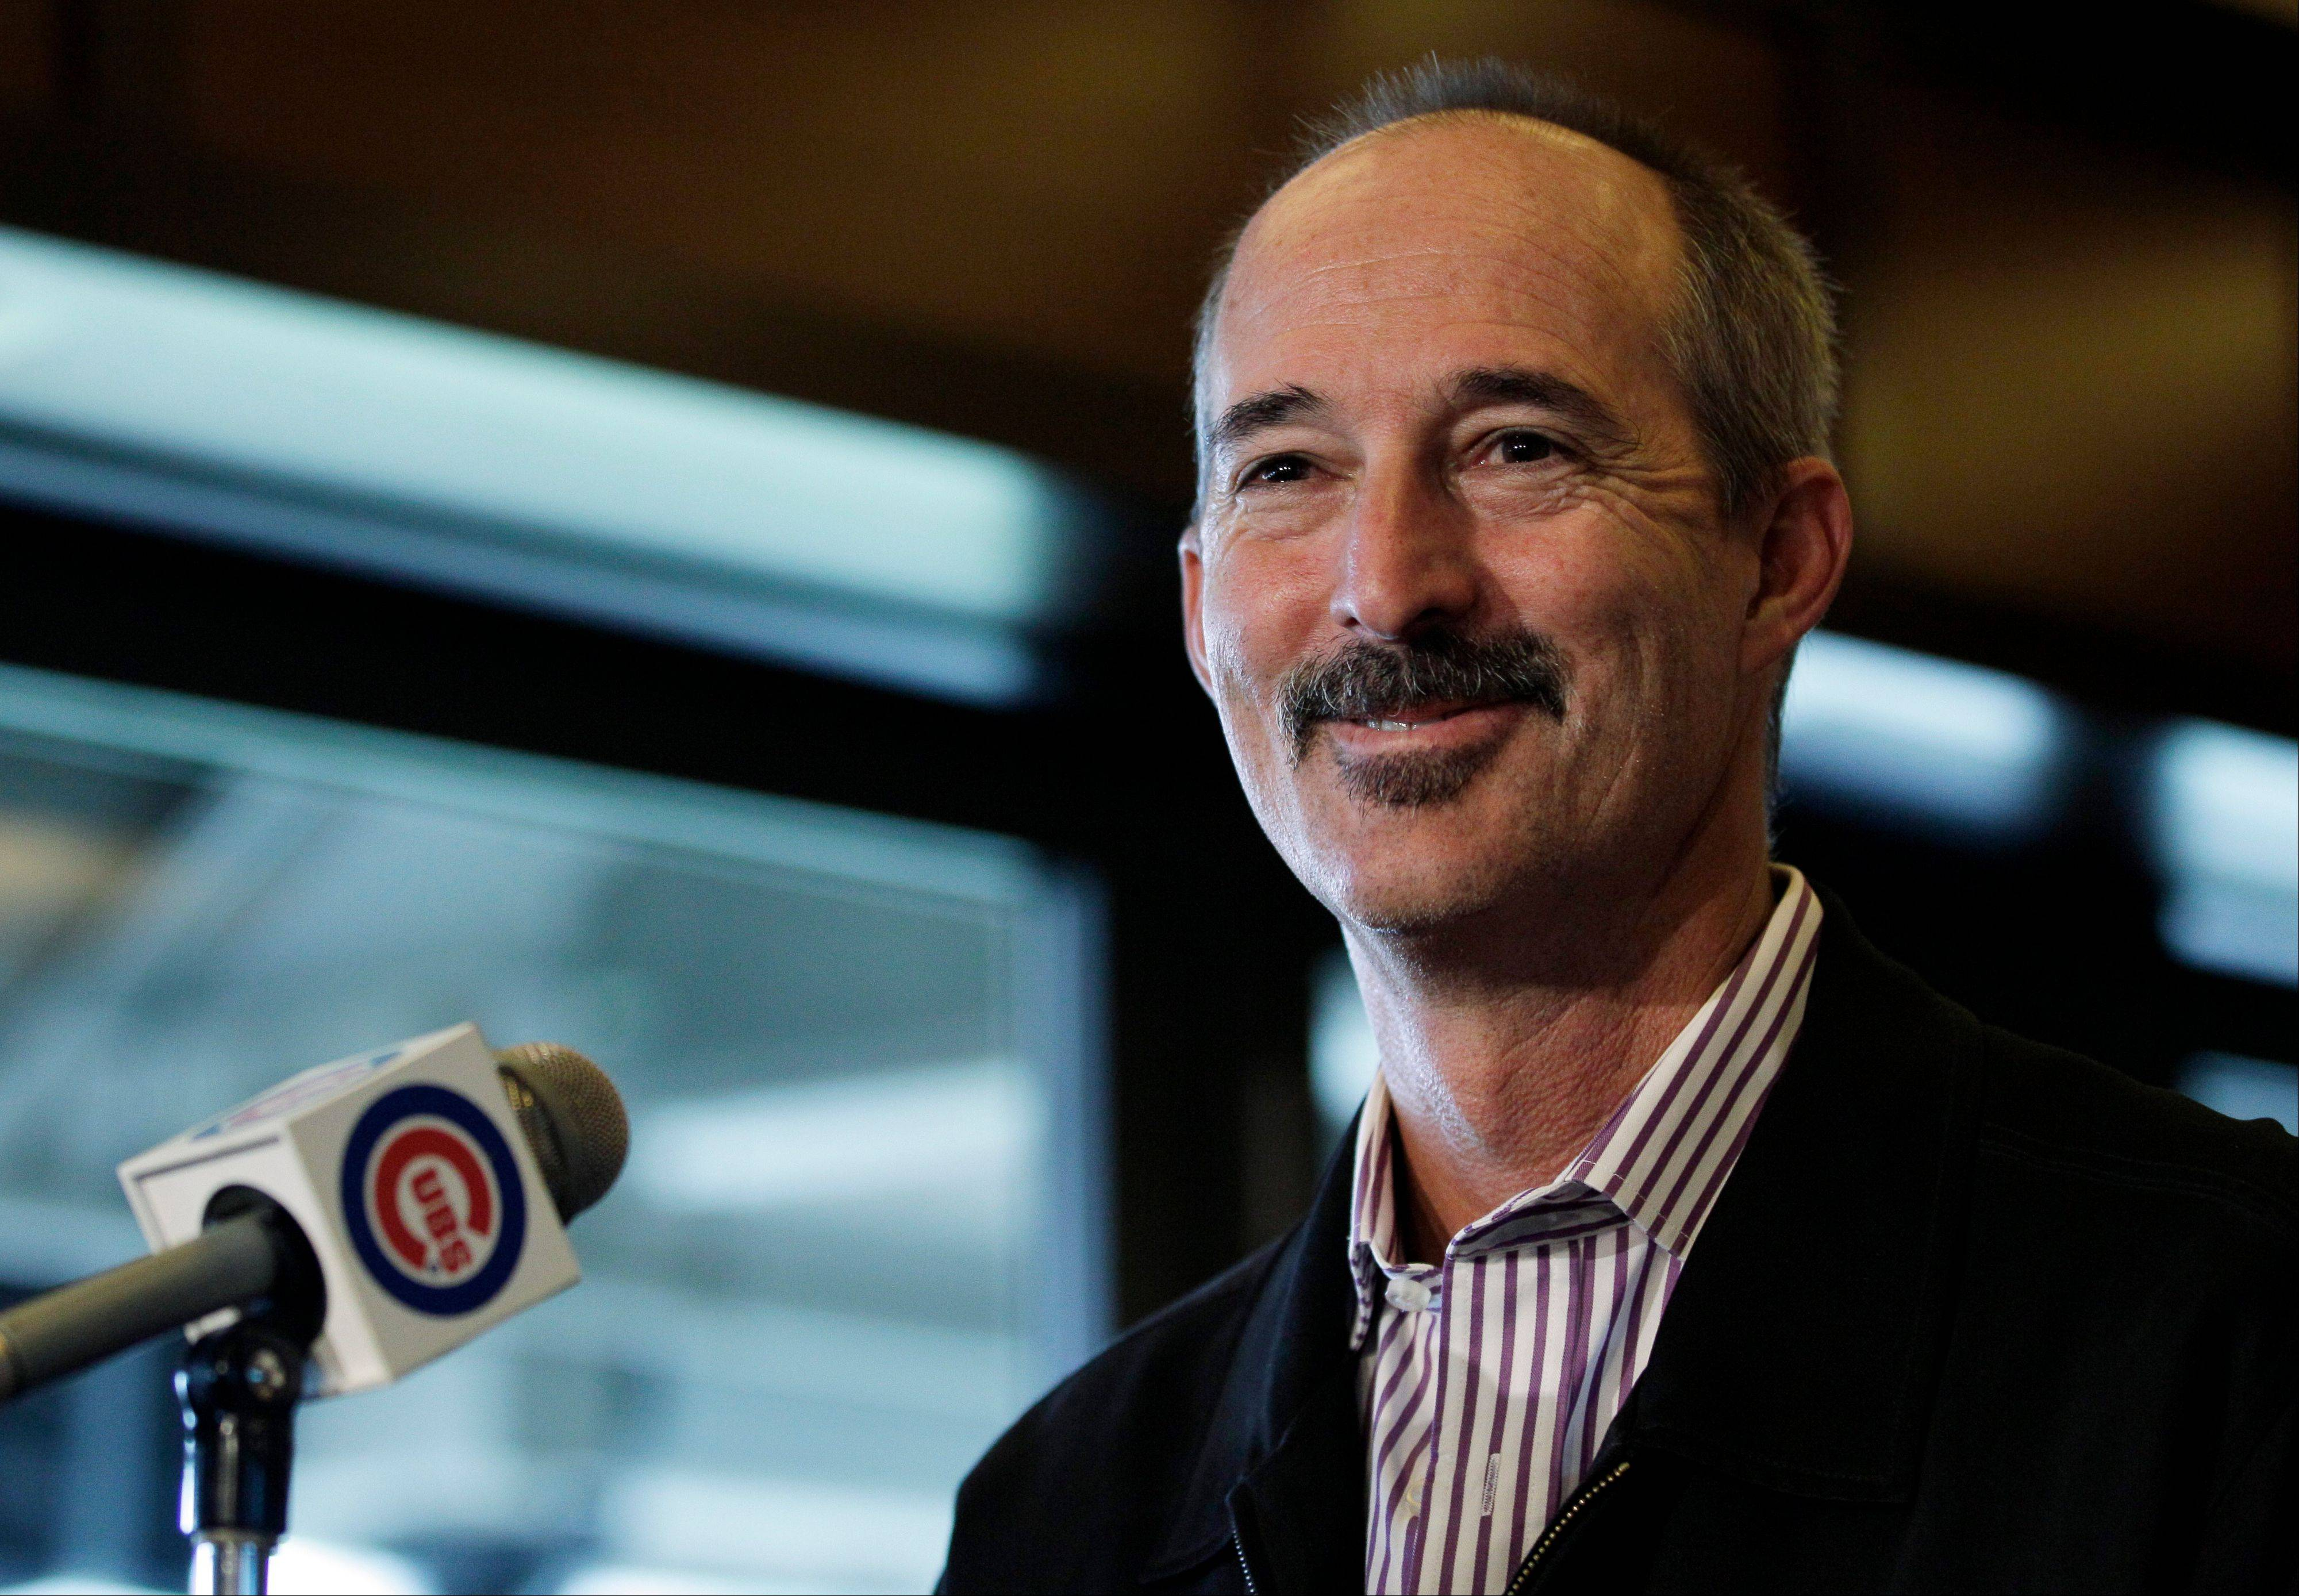 Texas Rangers pitching coach Mike Maddux, the brother of former Cubs star Greg Maddux, talks with the media after interviewing Wednesday for the Cubs manager position.